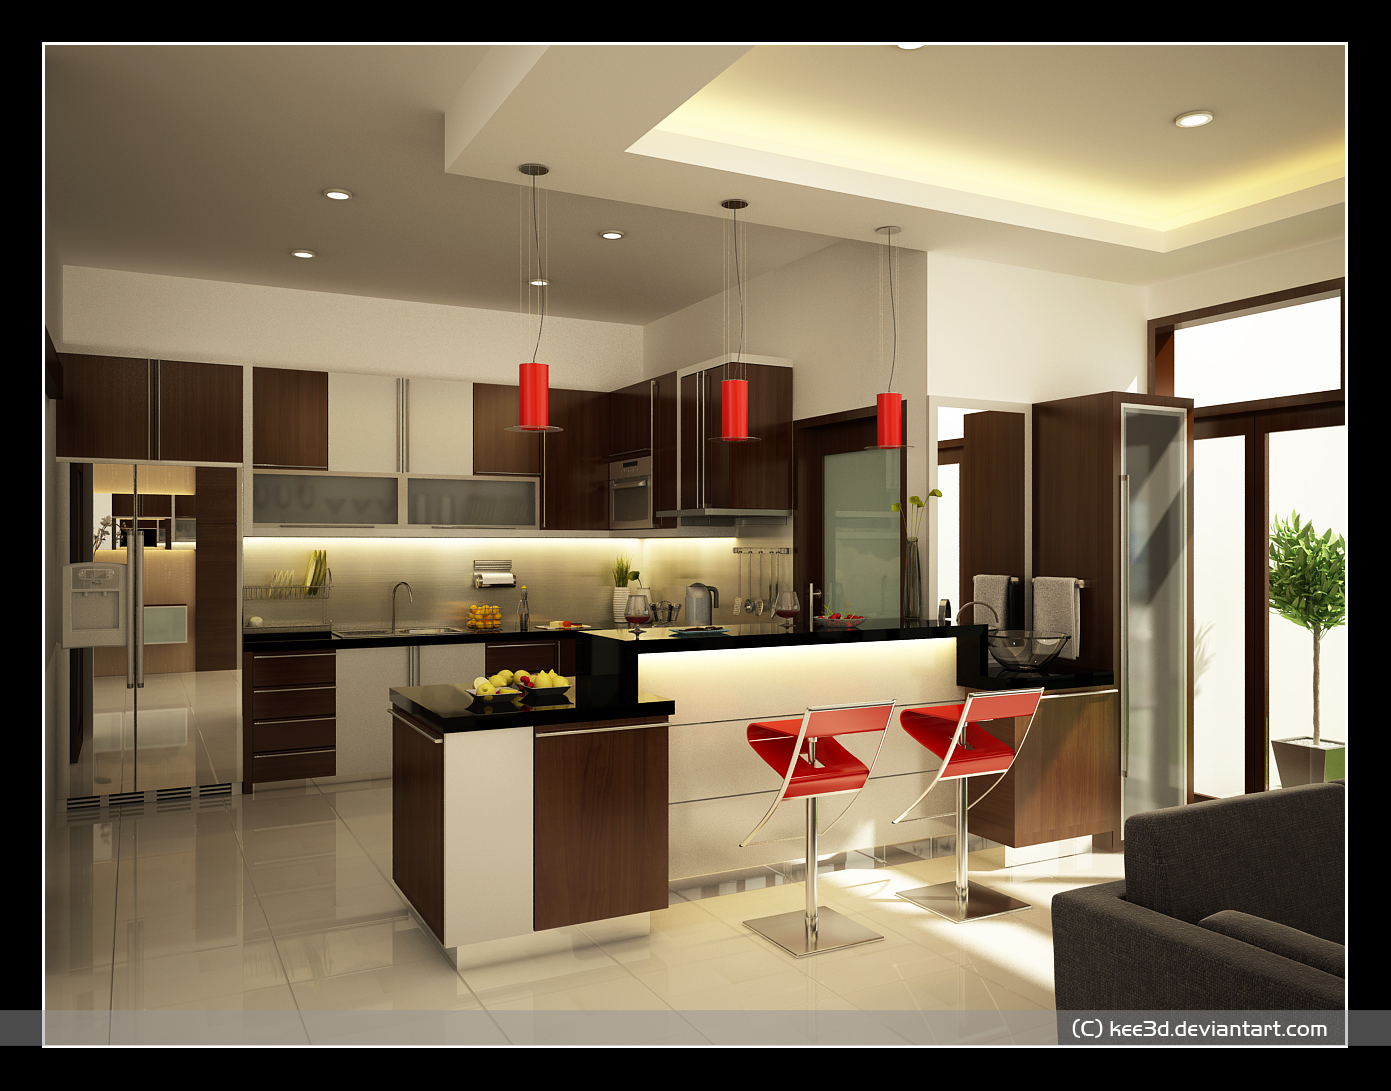 Home interior design decor kitchen design ideas set 2 for Interior design ideas for kitchens